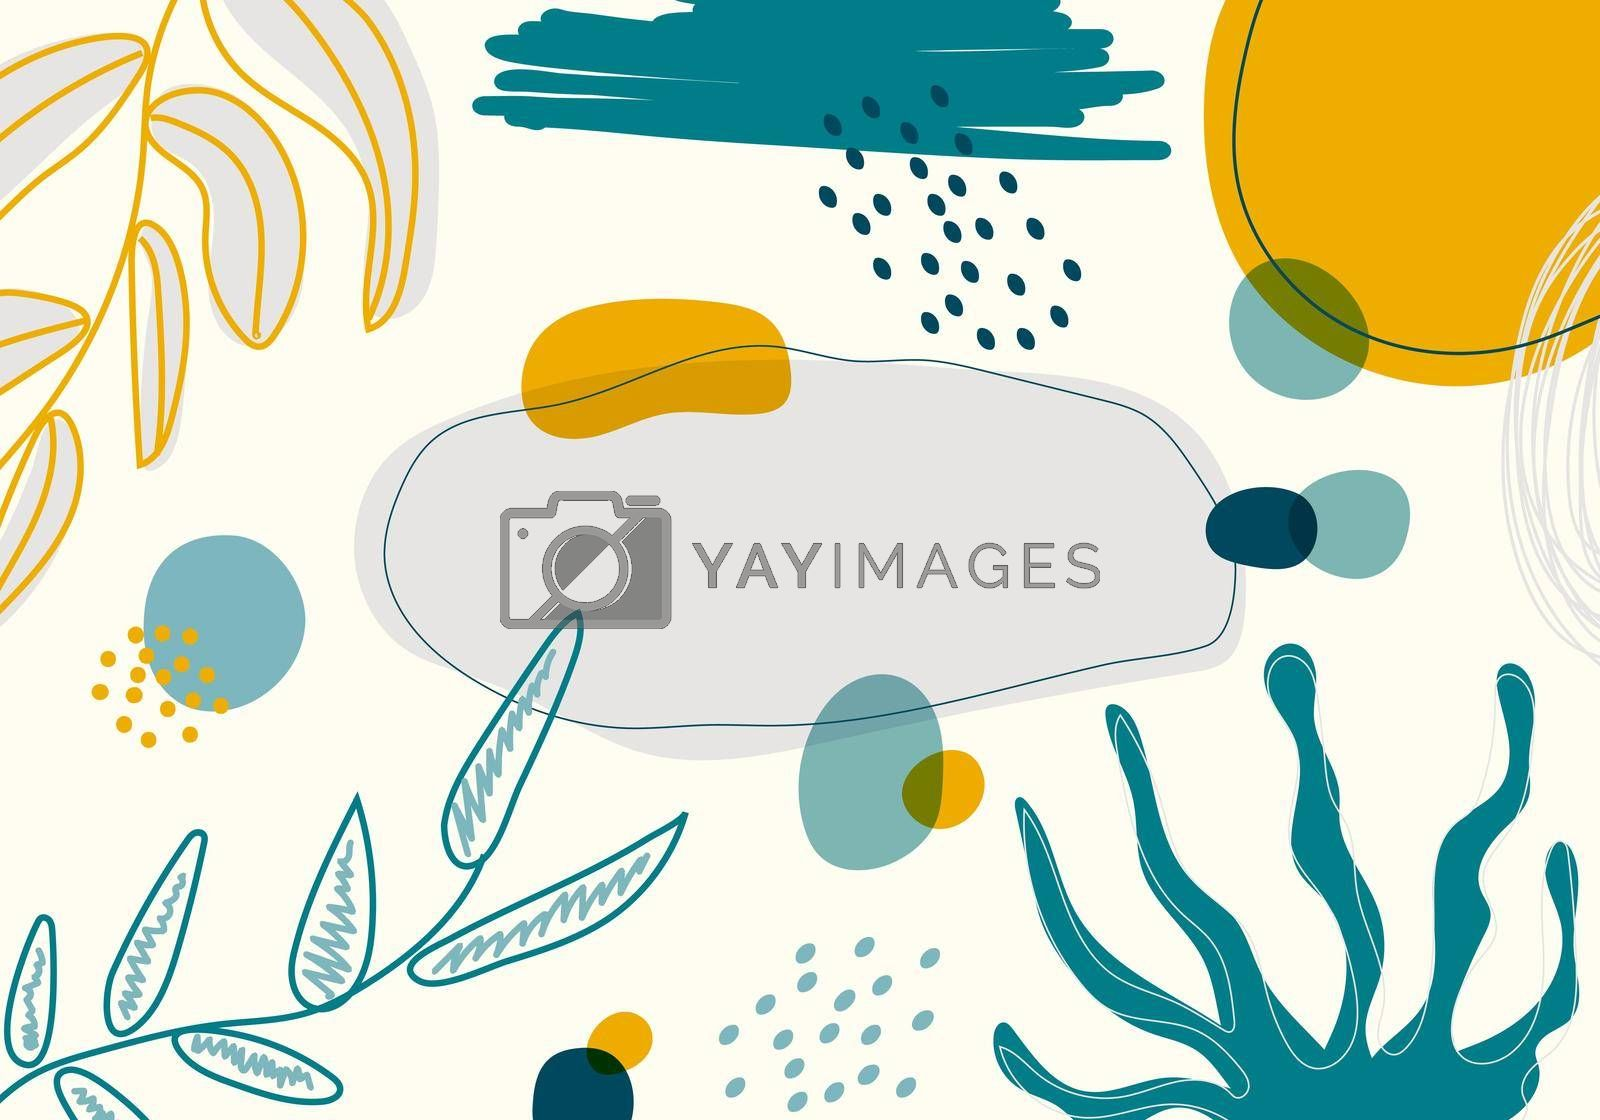 Royalty free image of Abstract modern creative collage contemporary hand drawn exotic jungle plants pattern background by phochi